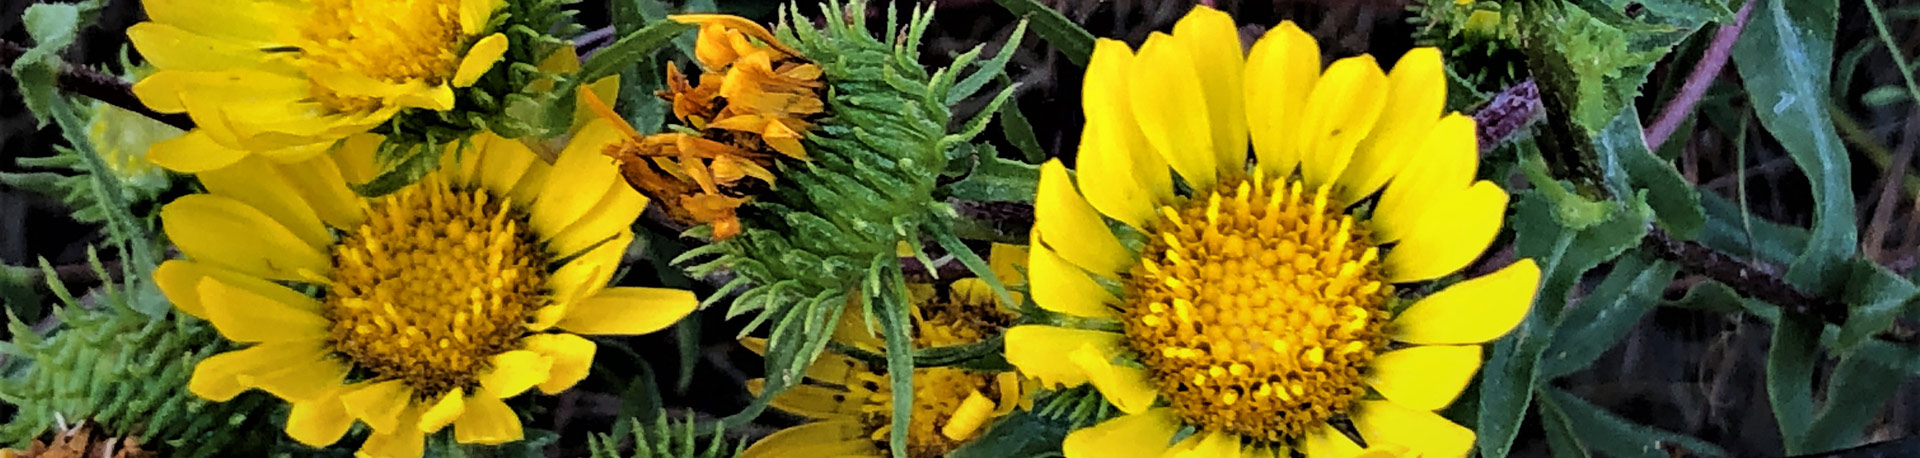 Yellow sunflowers up close and vibrant